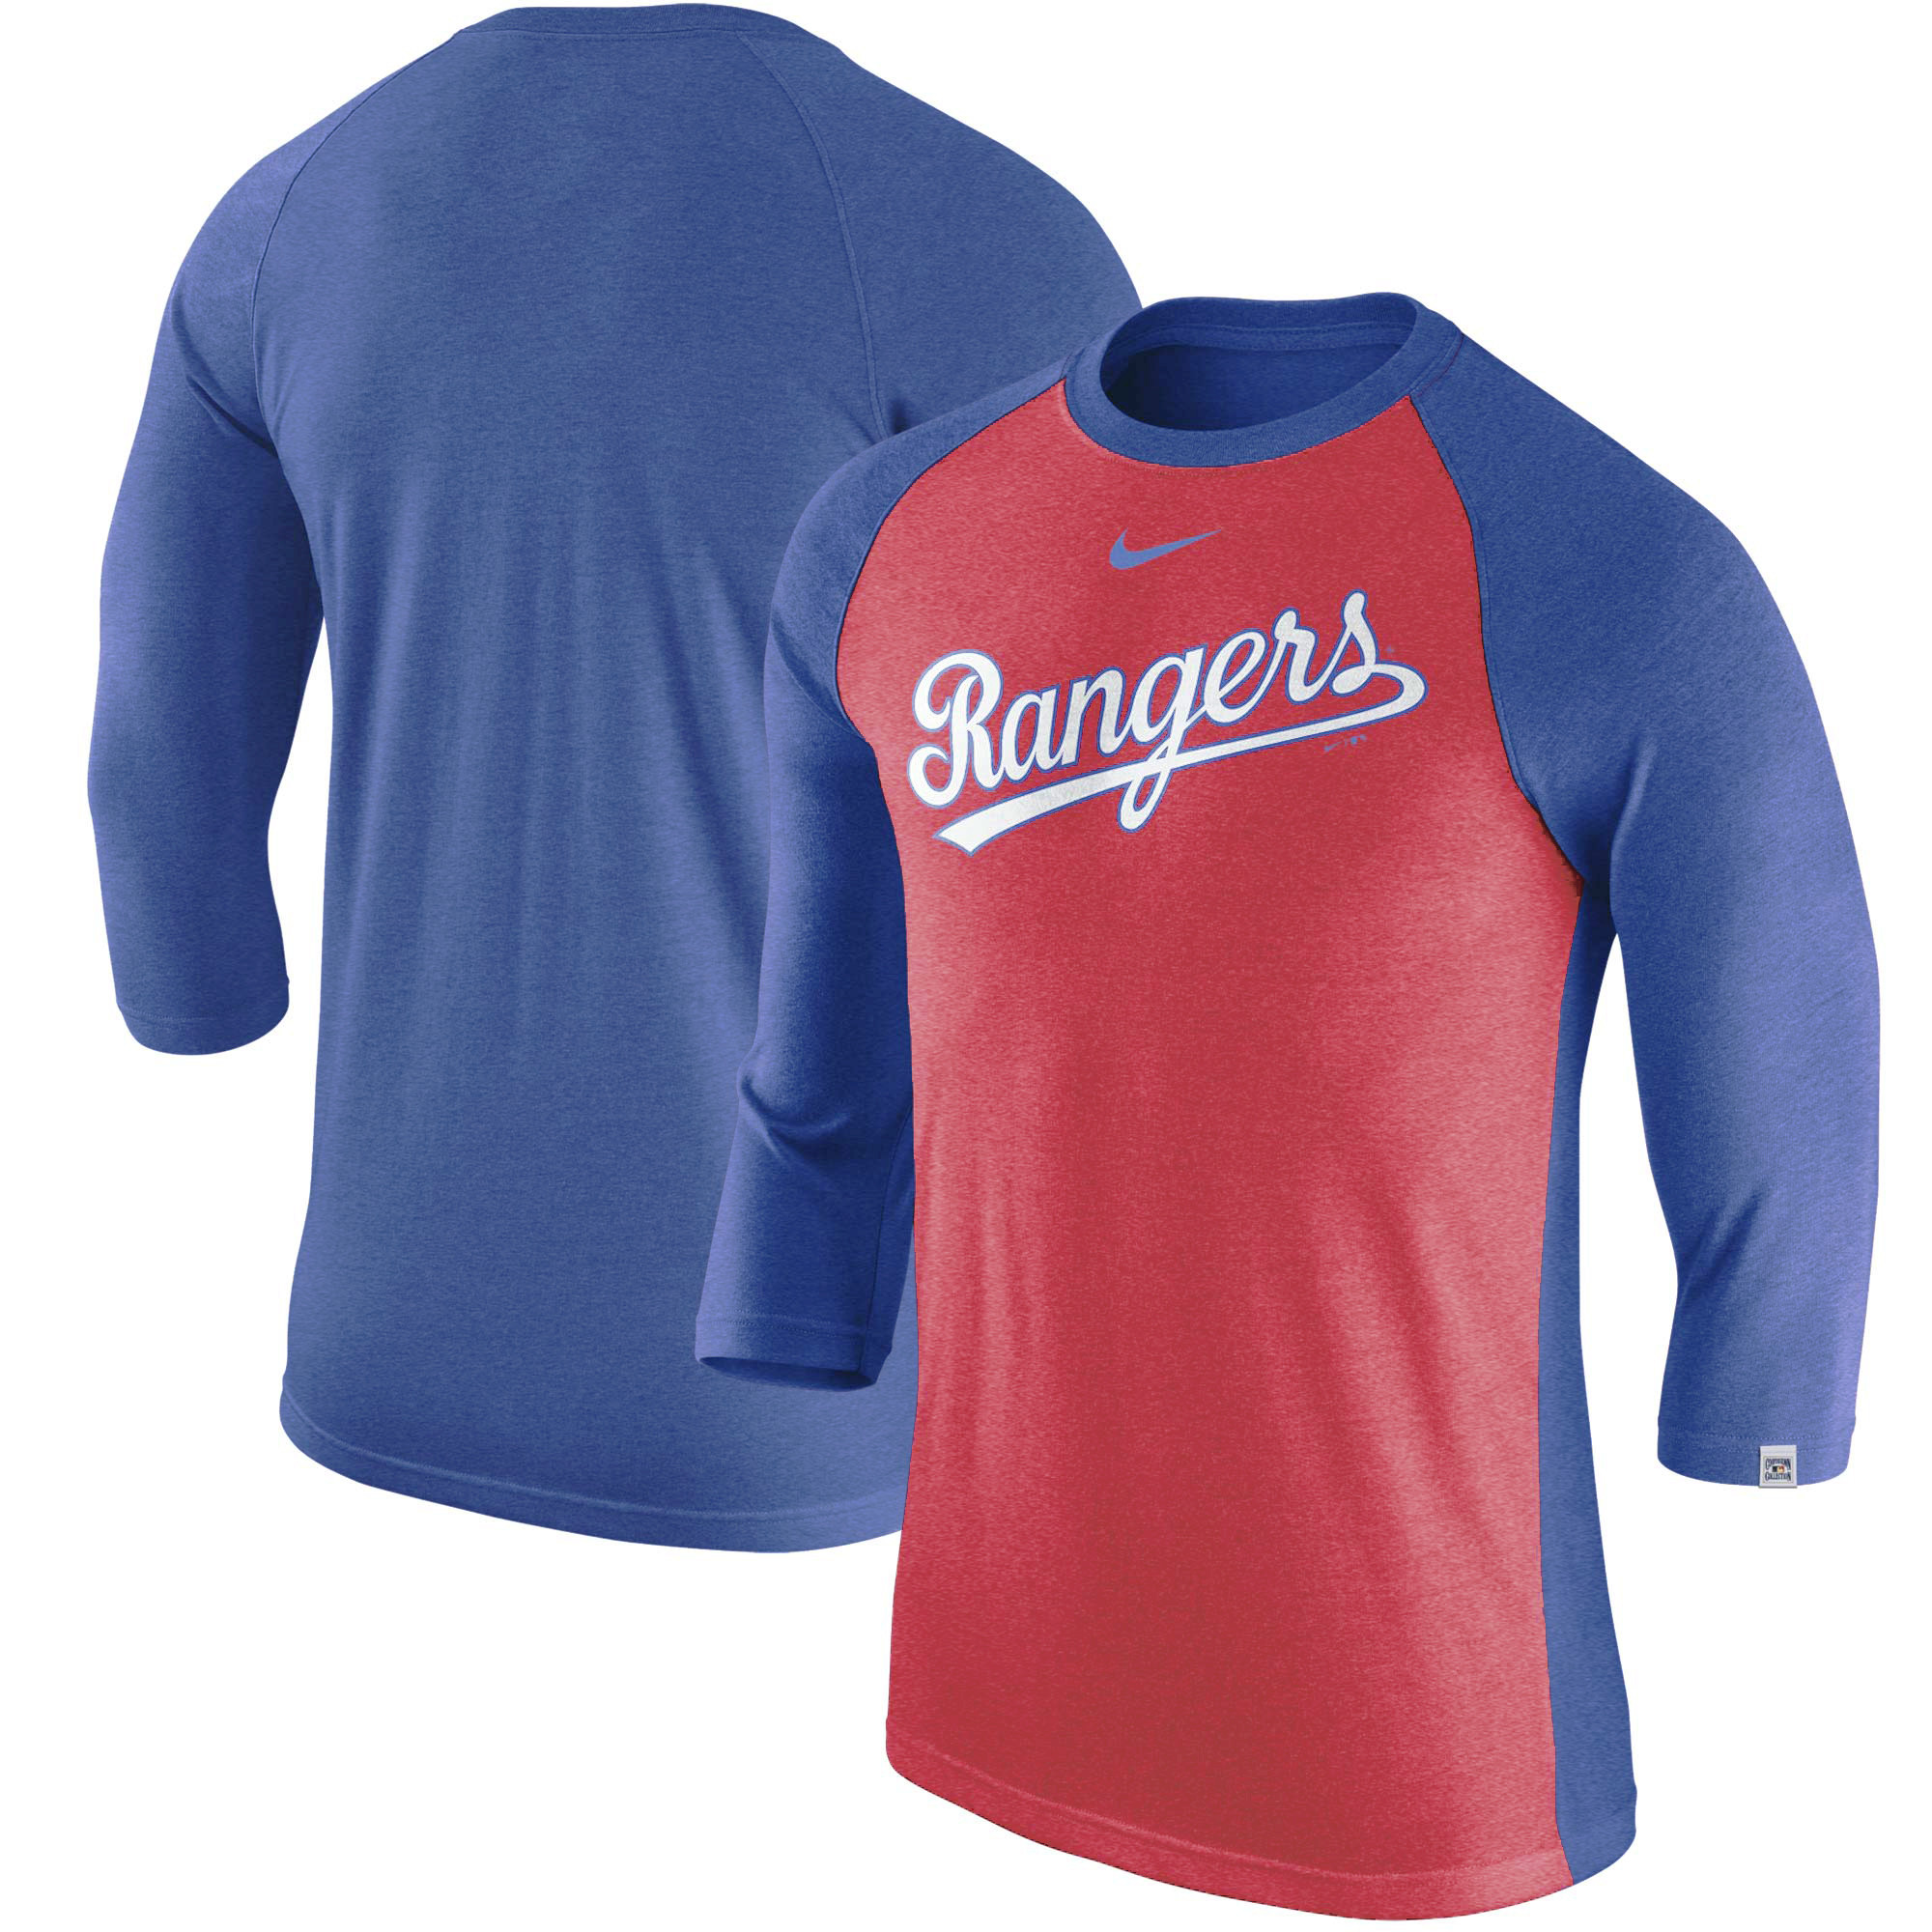 Texas Rangers Nike Wordmark Tri-Blend Raglan 3/4-Sleeve T-Shirt - Red/Royal